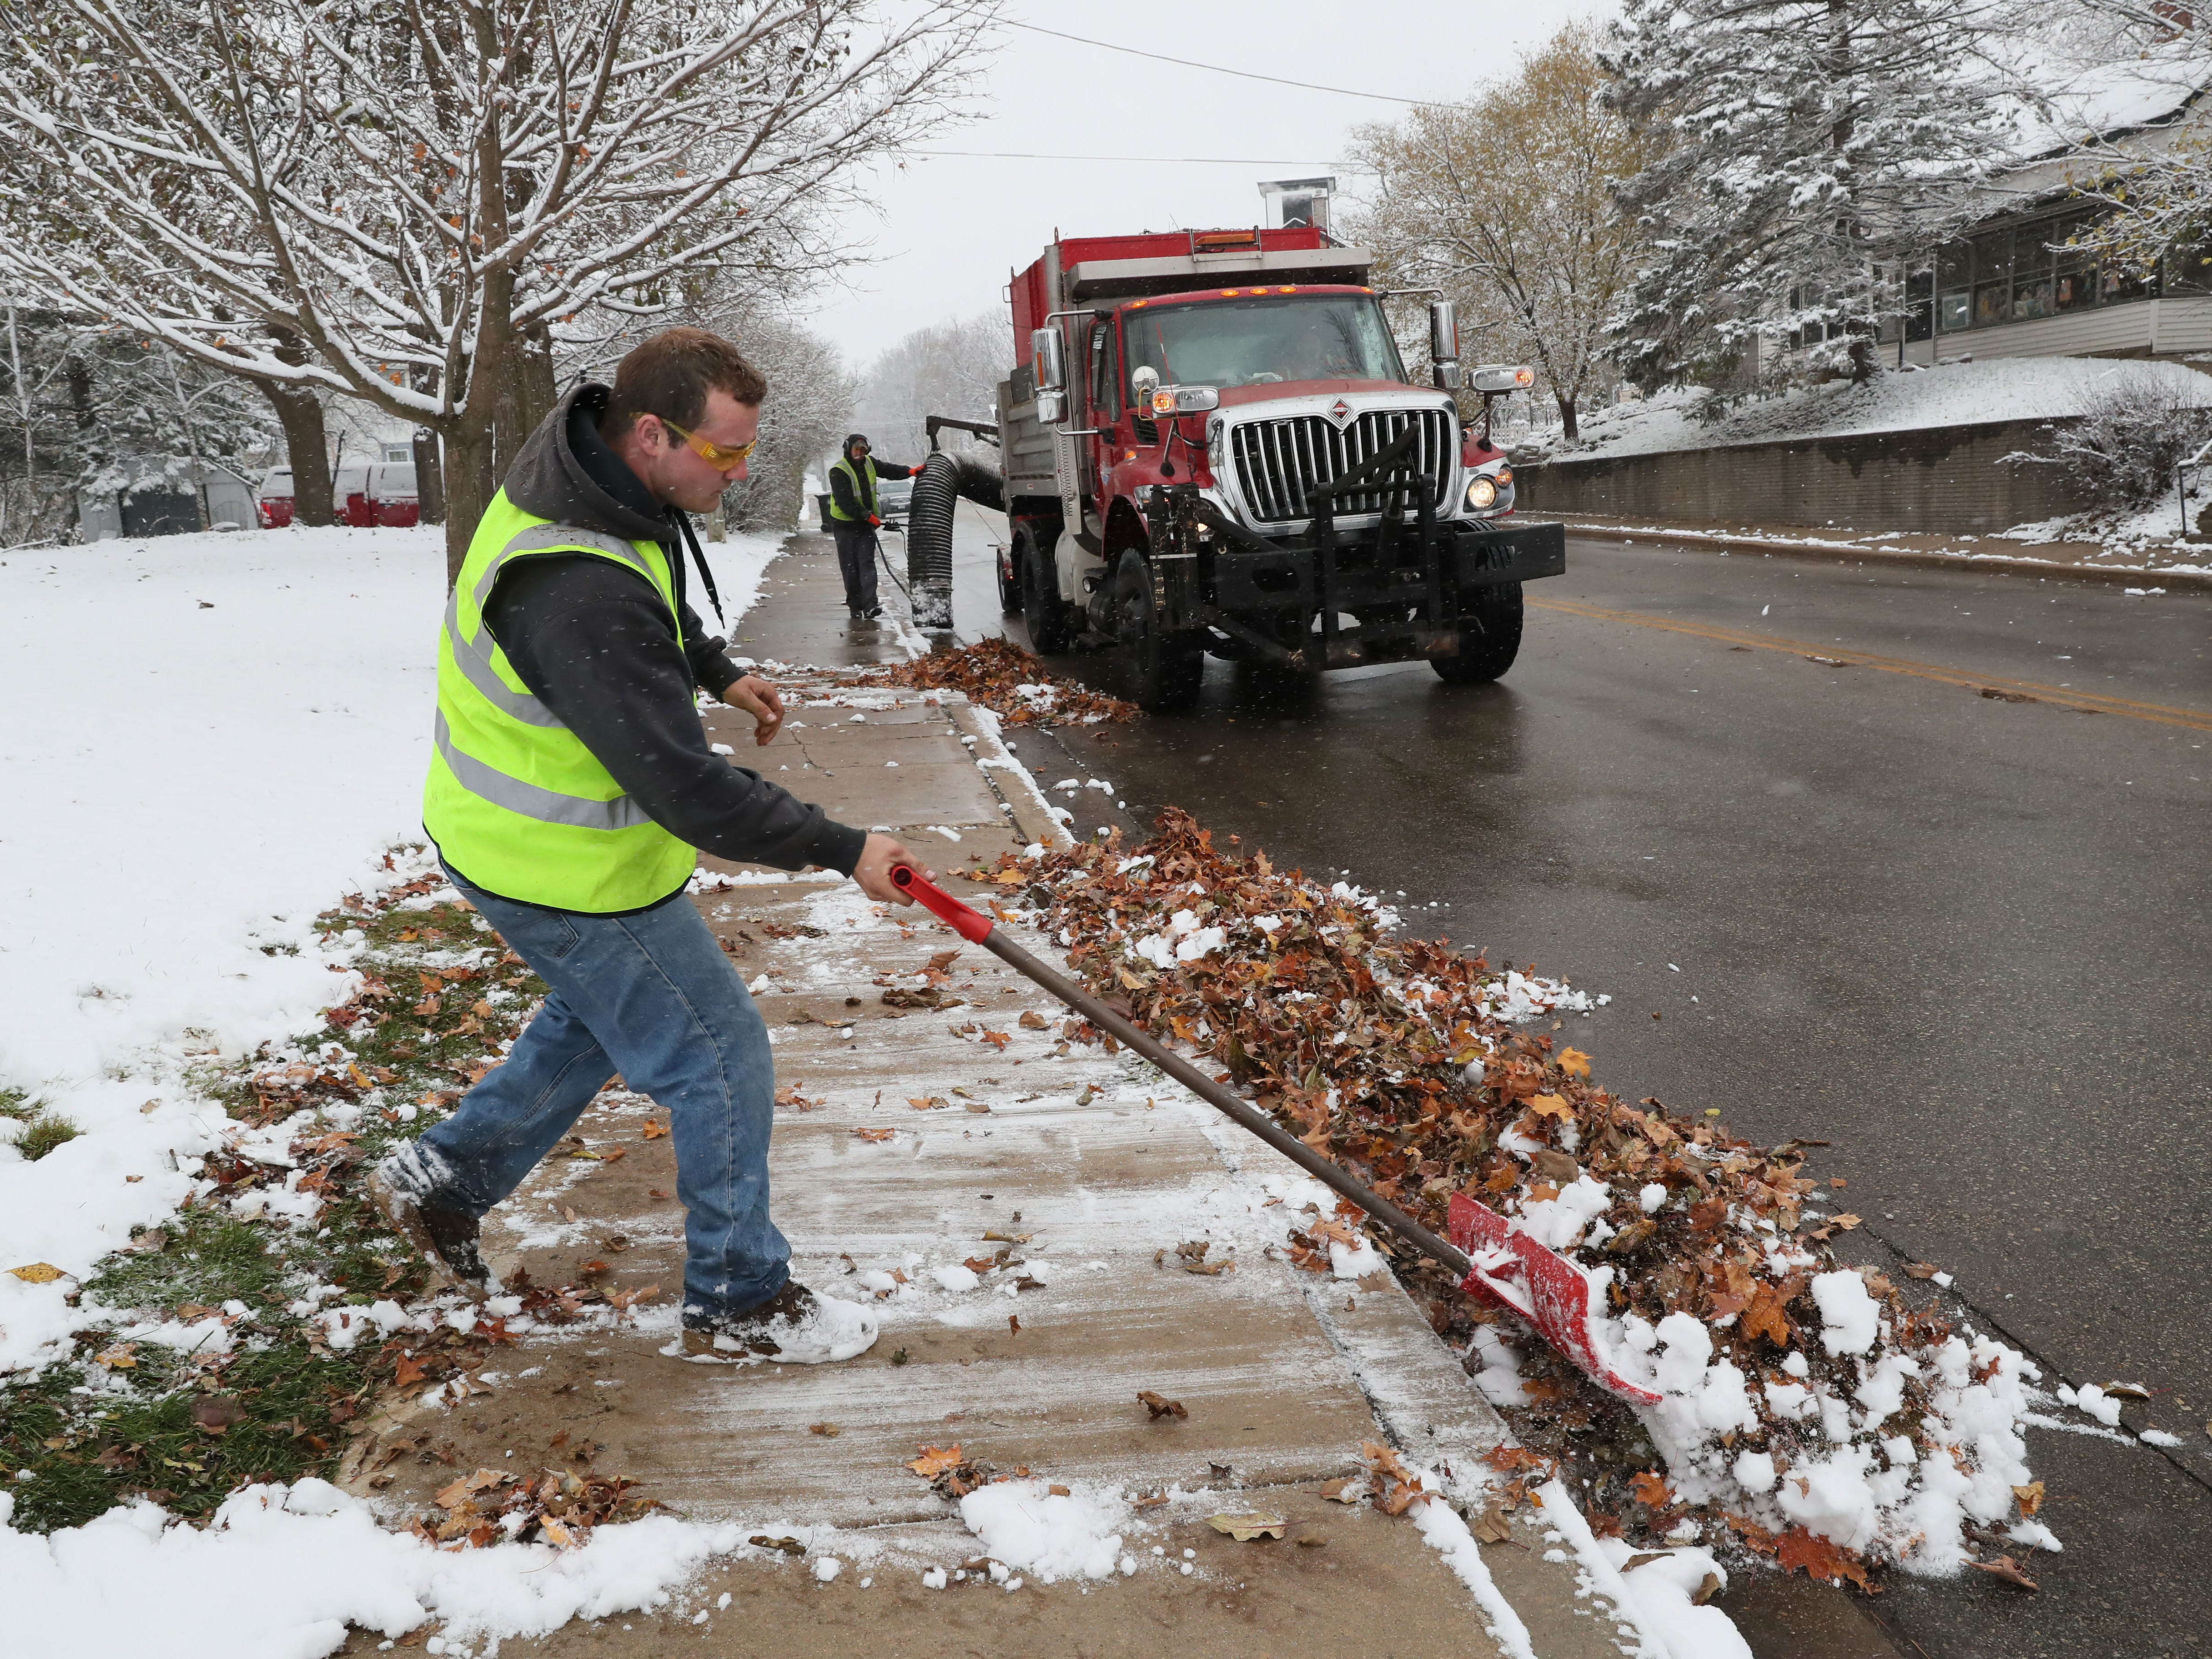 Jarrett Schmitz (left) shovels snow-covered leaves into the street along Prospect Avenue in the Village of Pewaukee as Dan Greig vacuumsd them up. Both men work for the Village of Pewaukee.